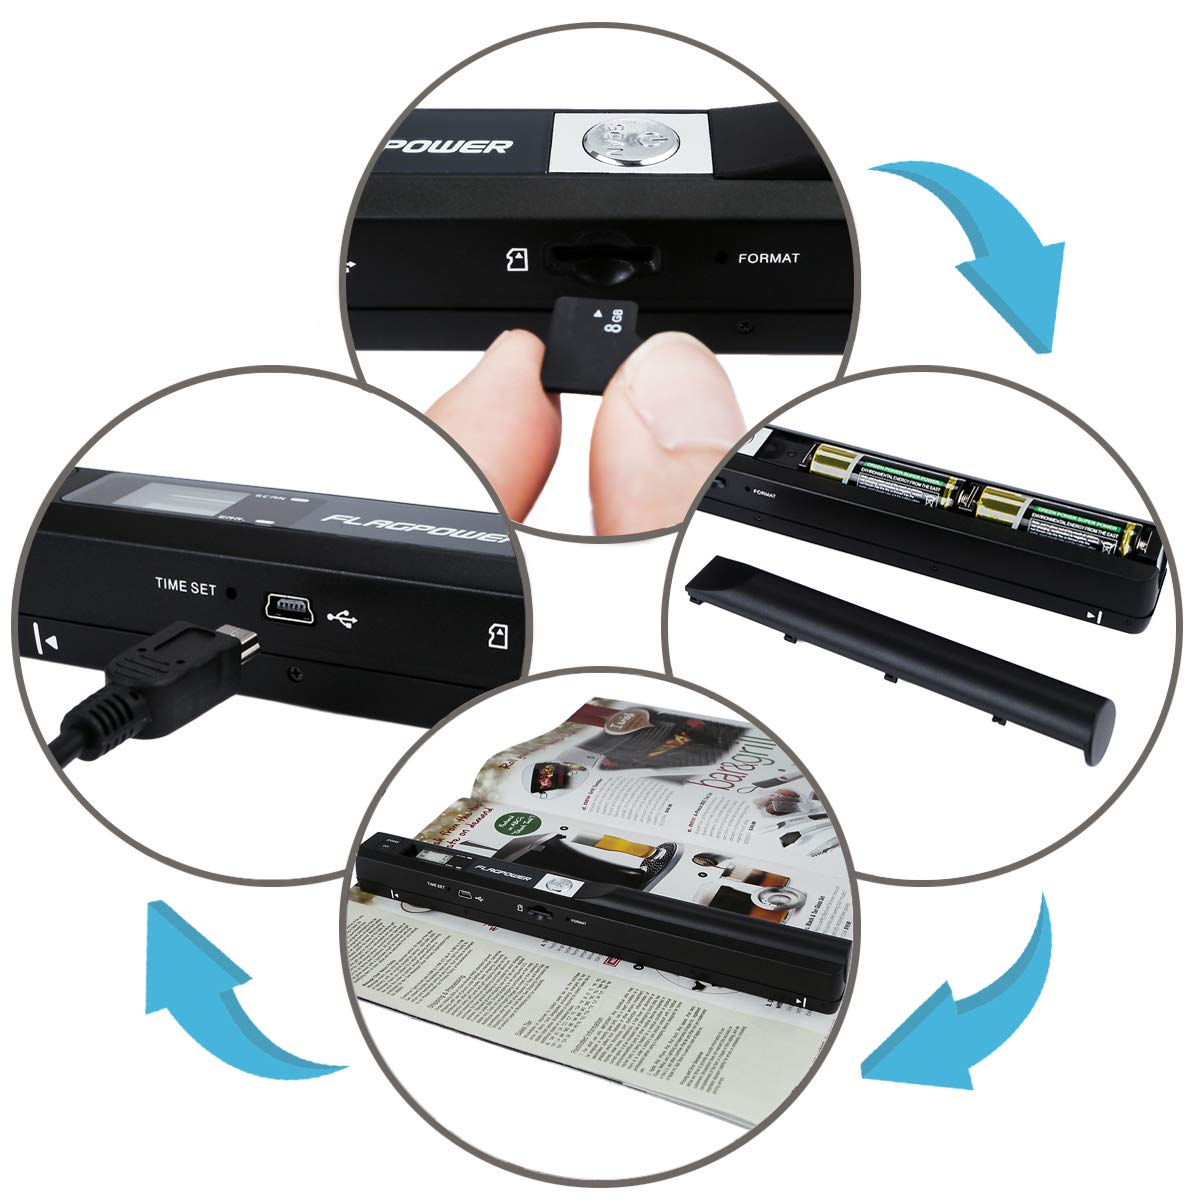 Included 8G Micro SD Card and Two AA Battery and OCR Software FLAGPOWER 900DPI Solutions Magic Wand Portable Scanner Business Card Scanner Handheld Document /& Image Scanner USB Mobile Scanner